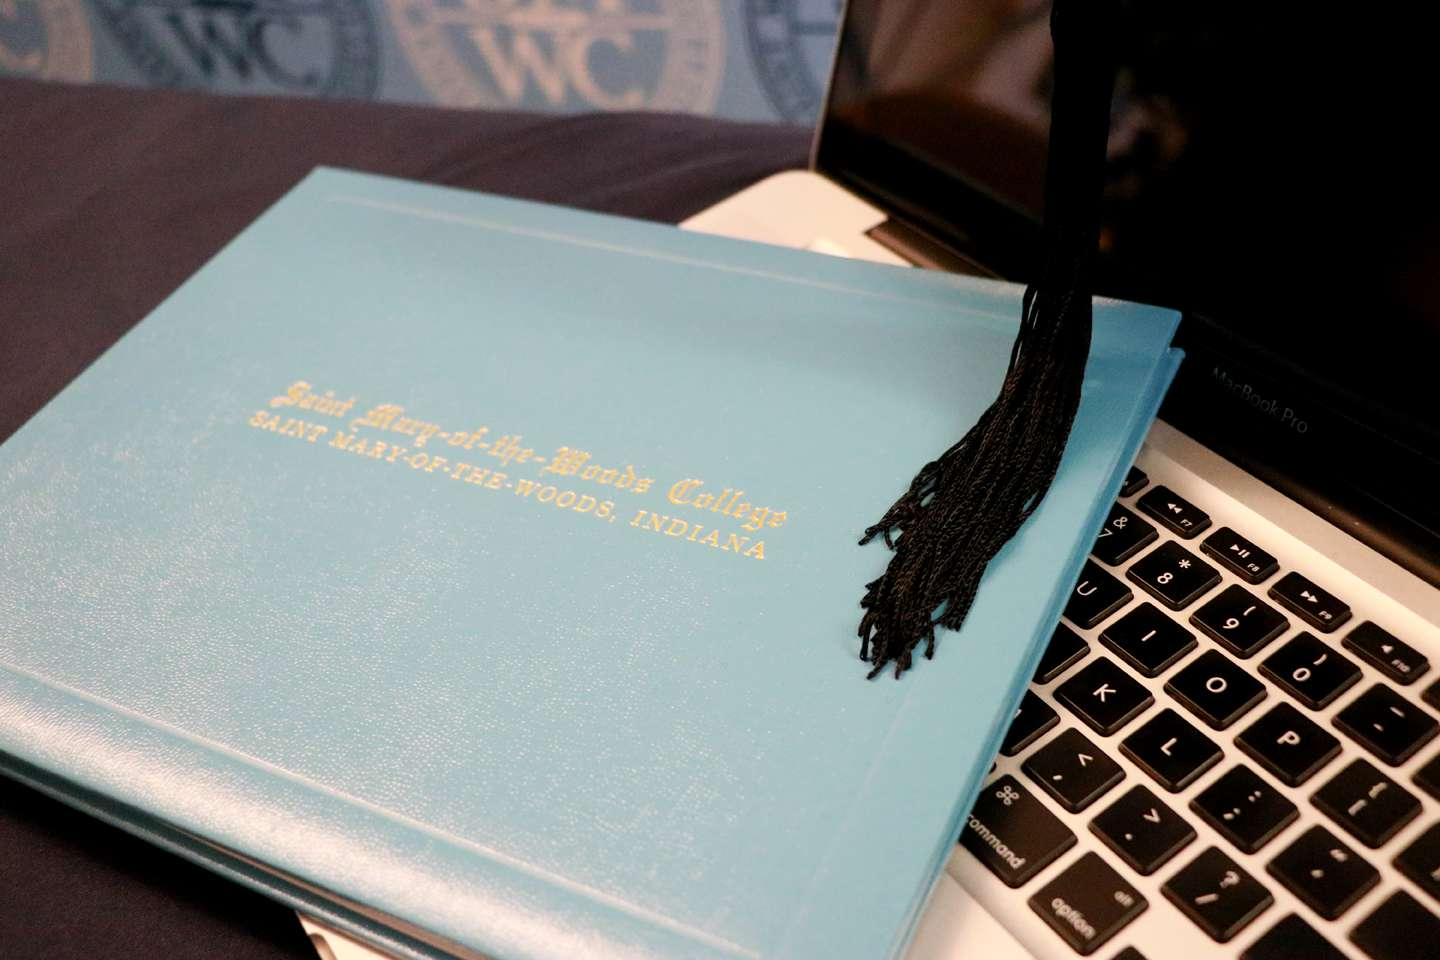 SMWC diploma, cap and keyboard